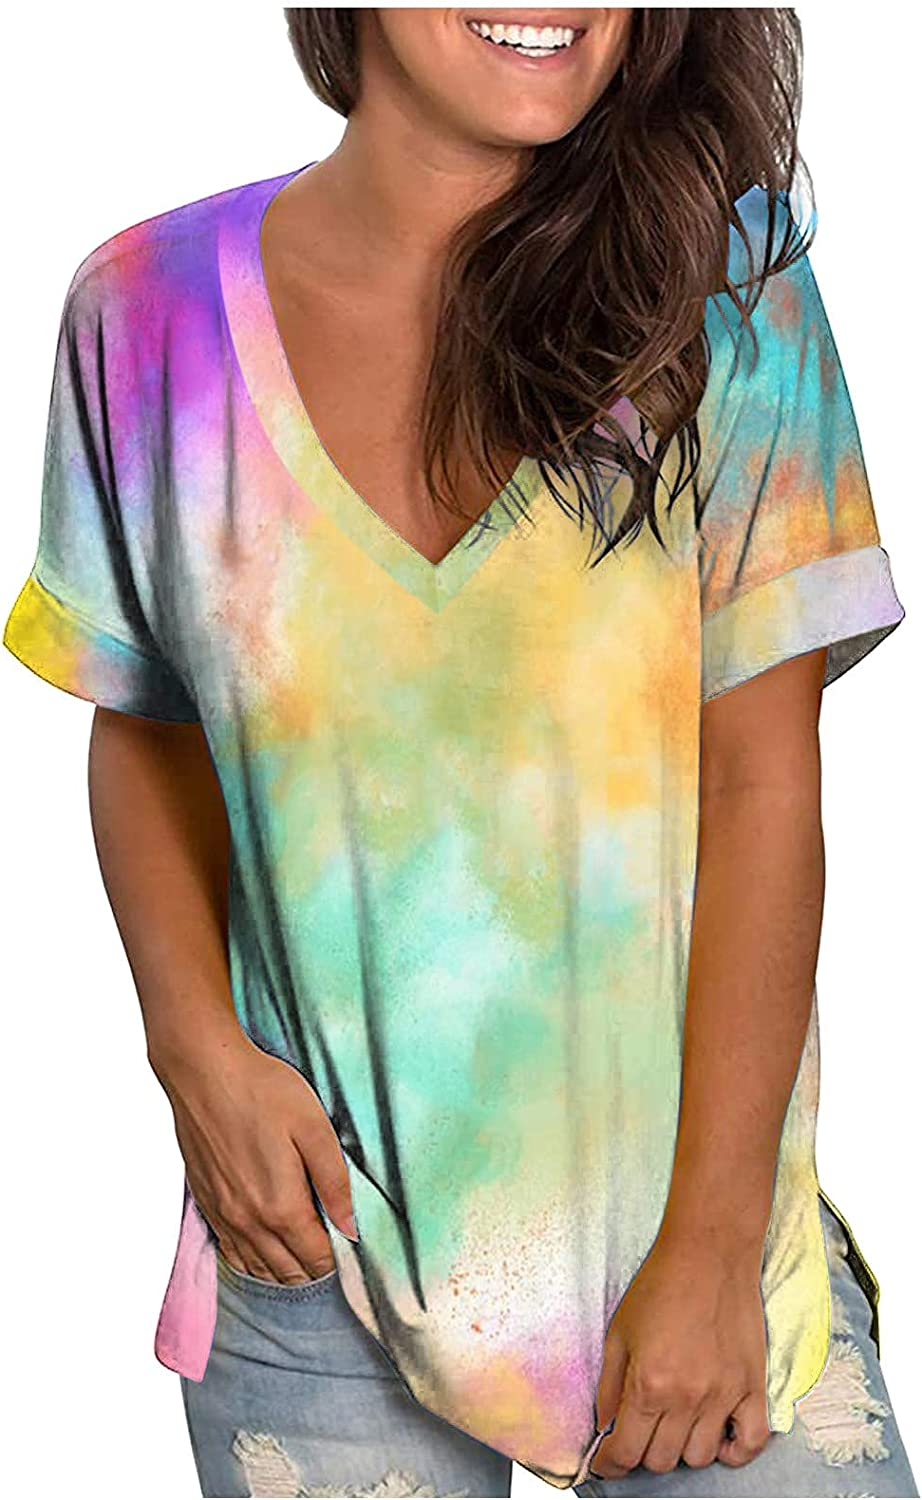 Womens Tshirts,Summer Tops for Women Casual Tie Dye T-Shirts V Neck Tees Short Sleeve Blouses Loose Pullover Shirts